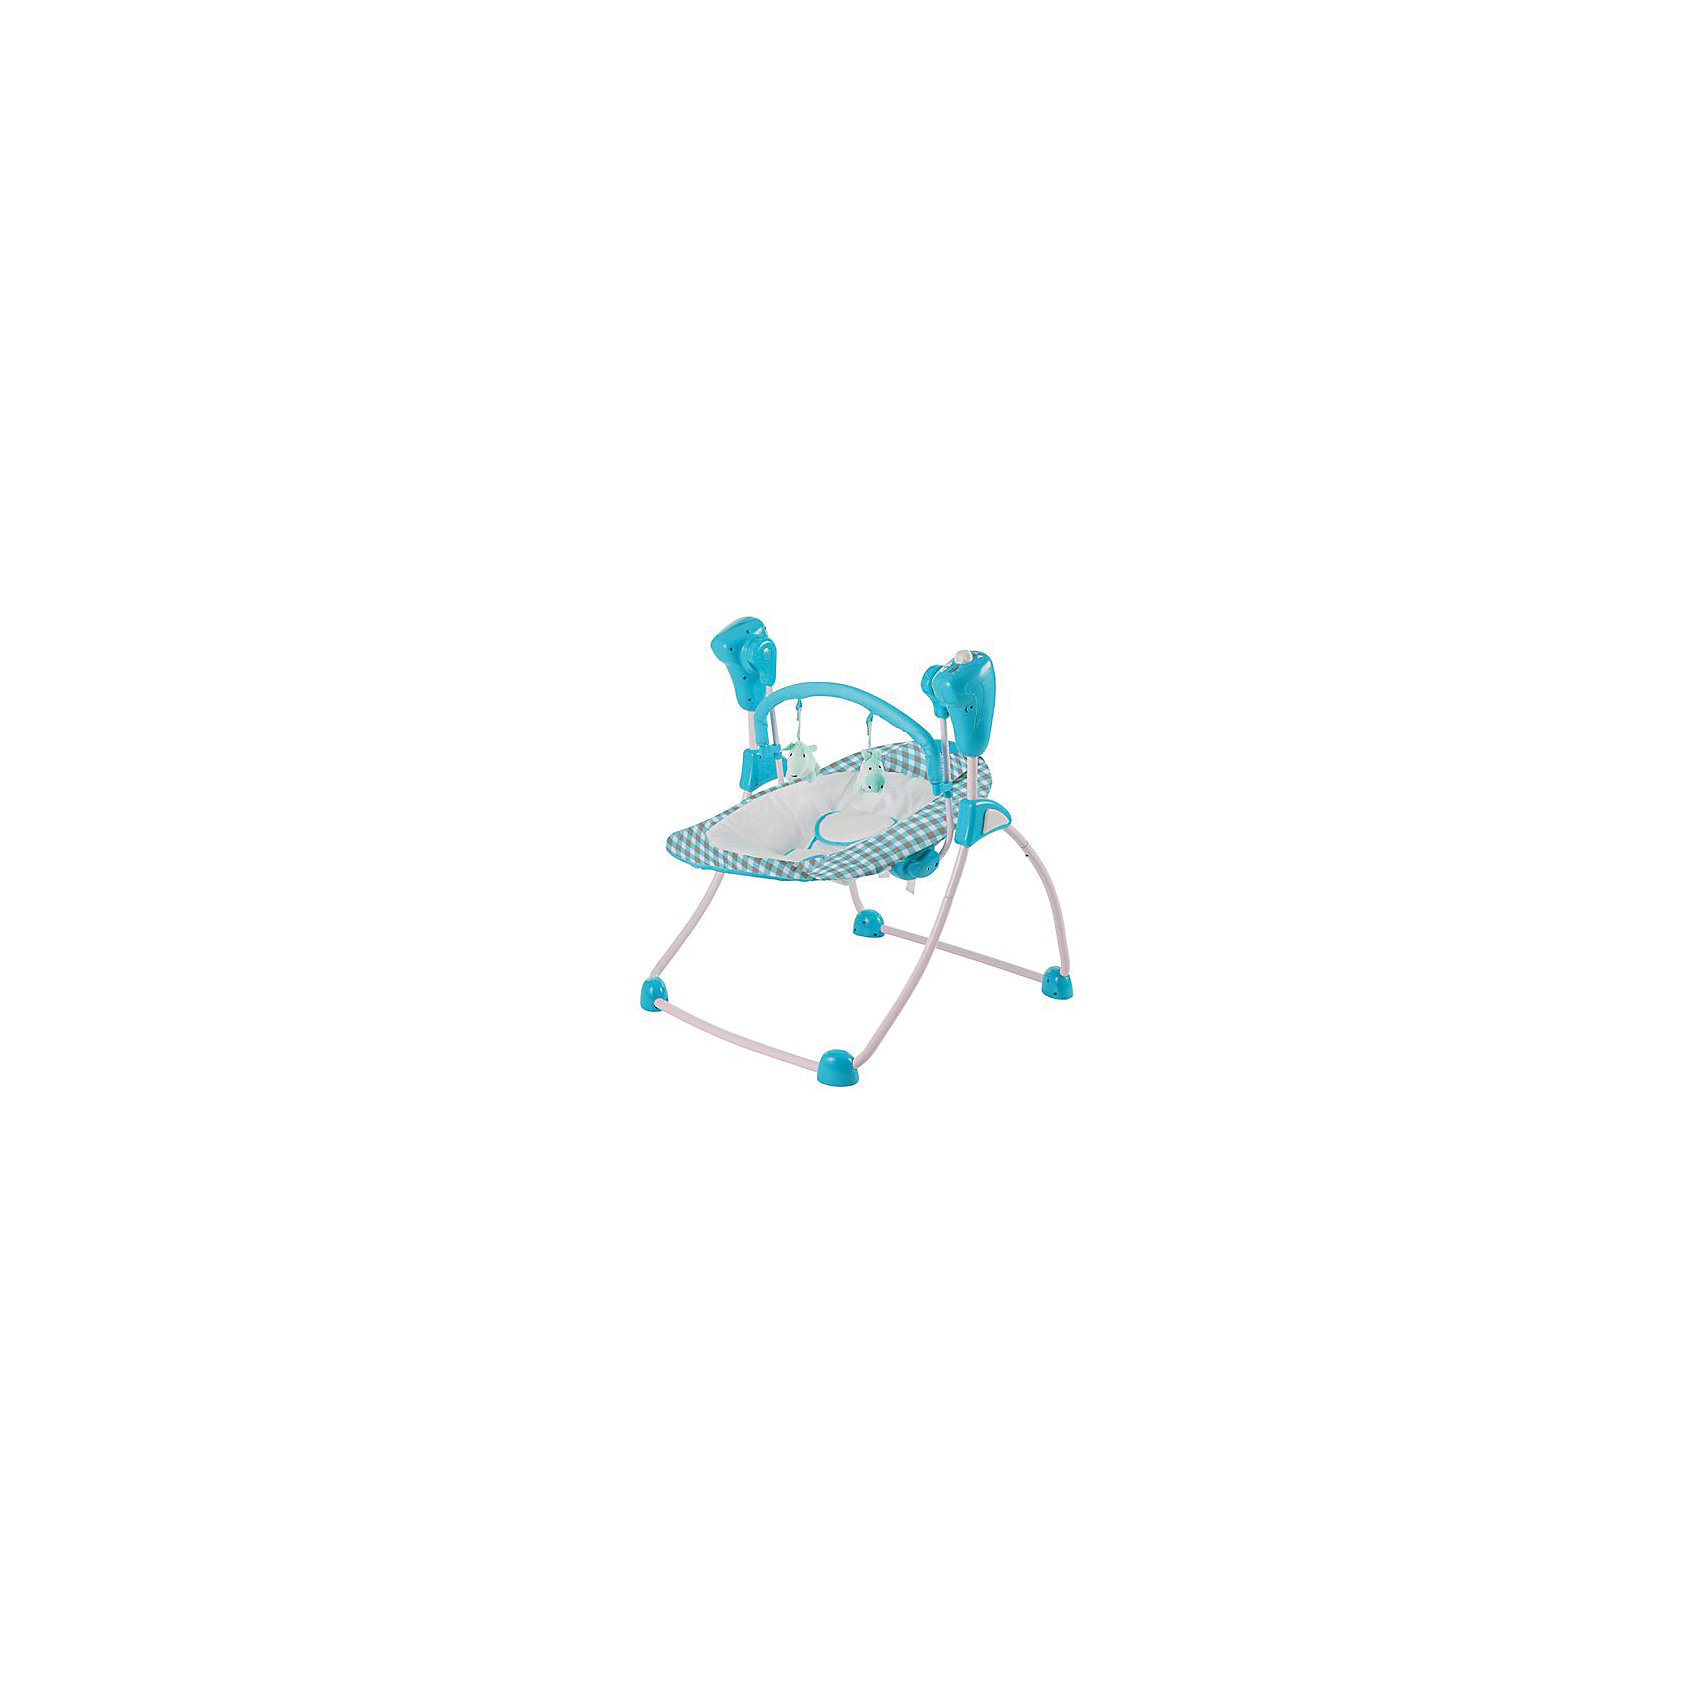 ������-������ GB-001 Amalfy, Happy Baby, Aqua